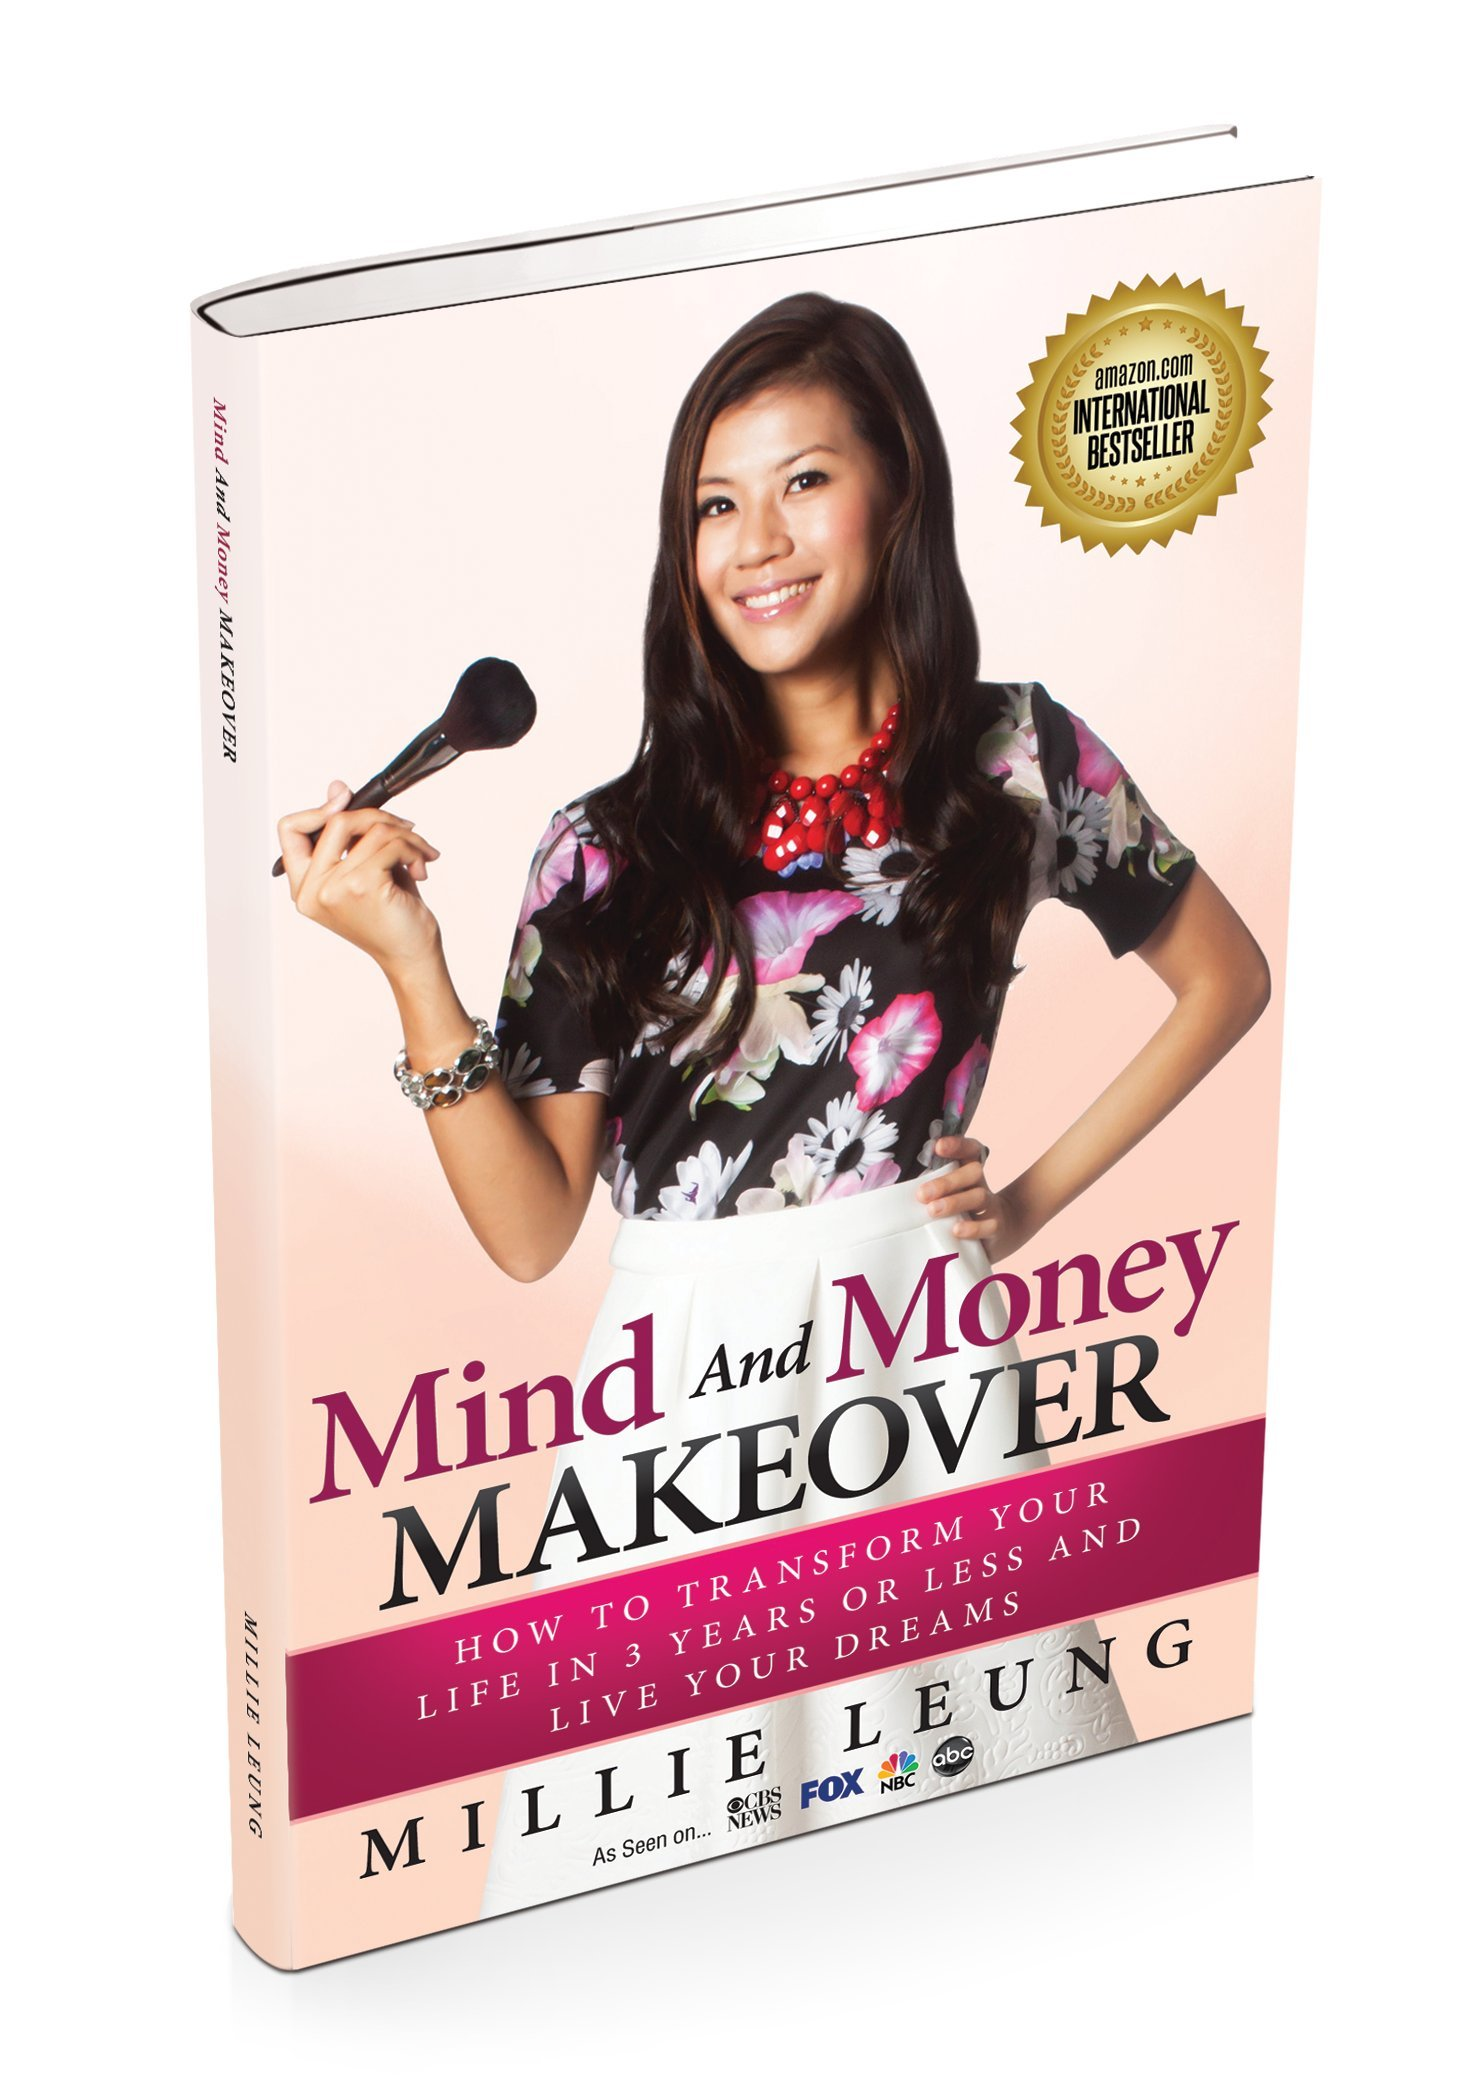 Download Mind And Money Makeover - How To Transform Your Life In 3 Years Or Less And Live Your Dreams ebook